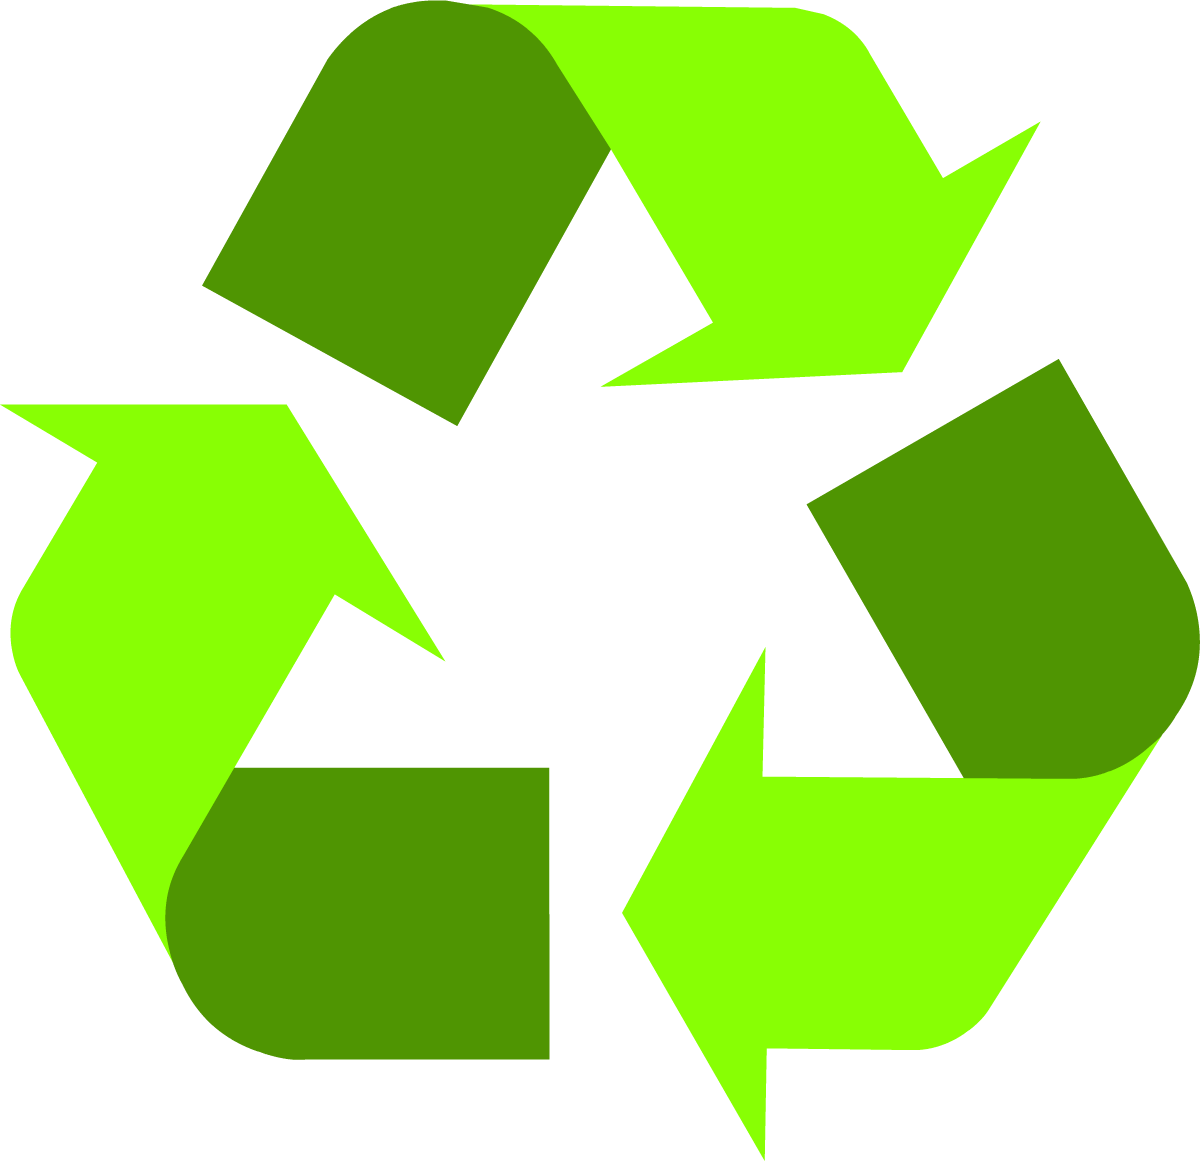 Recycle logo png. Icon images free download